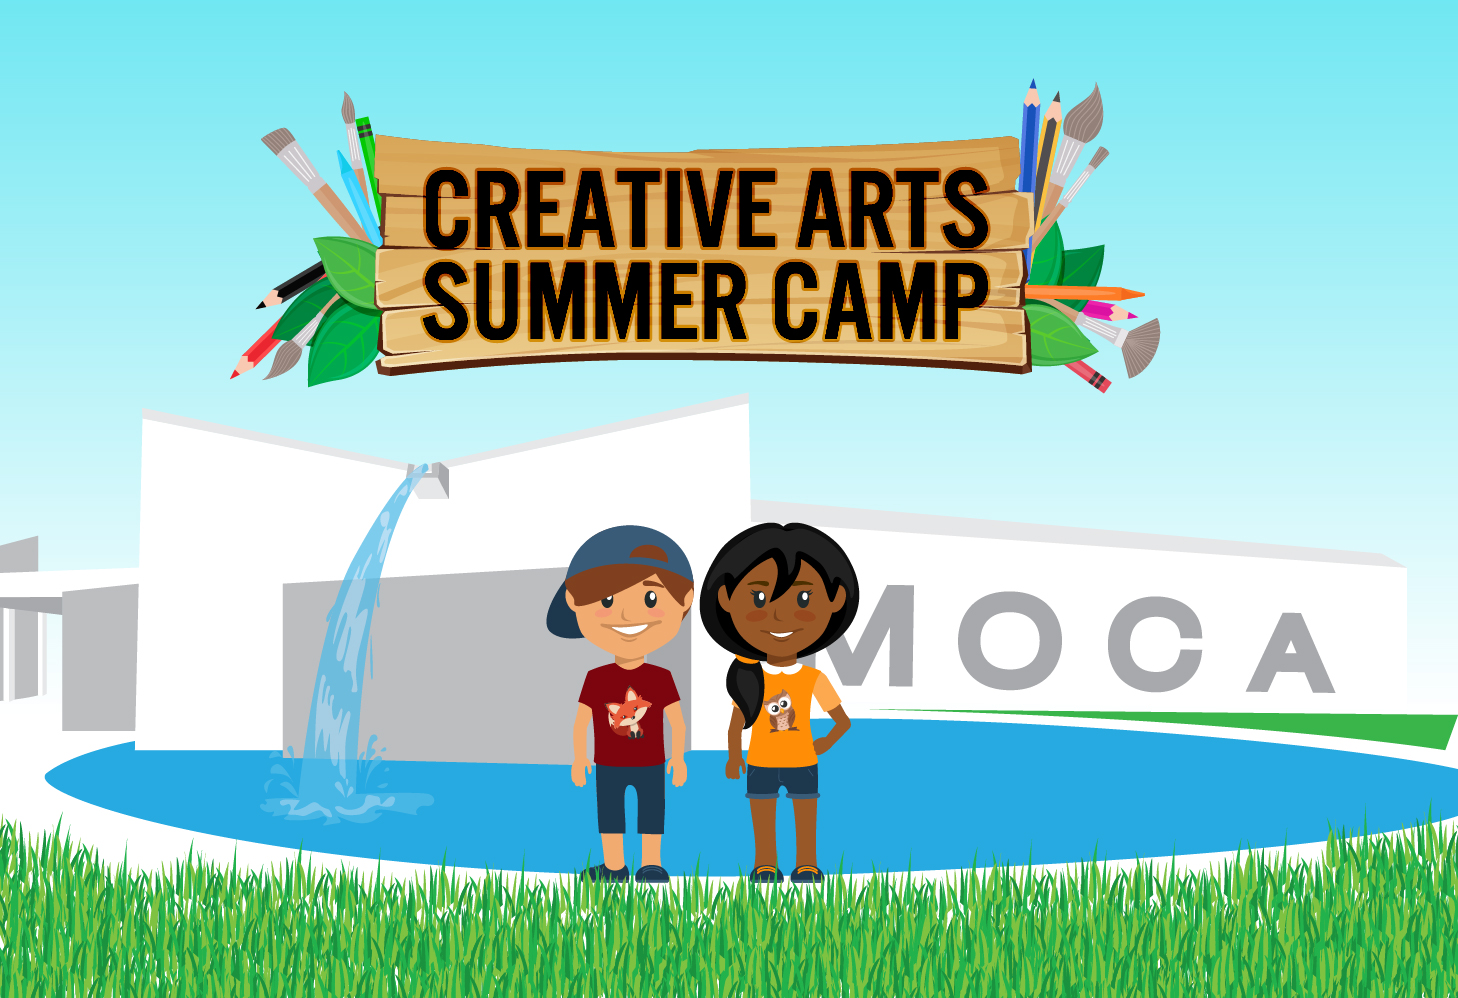 MOCA SUMMER ART CAMP 2016